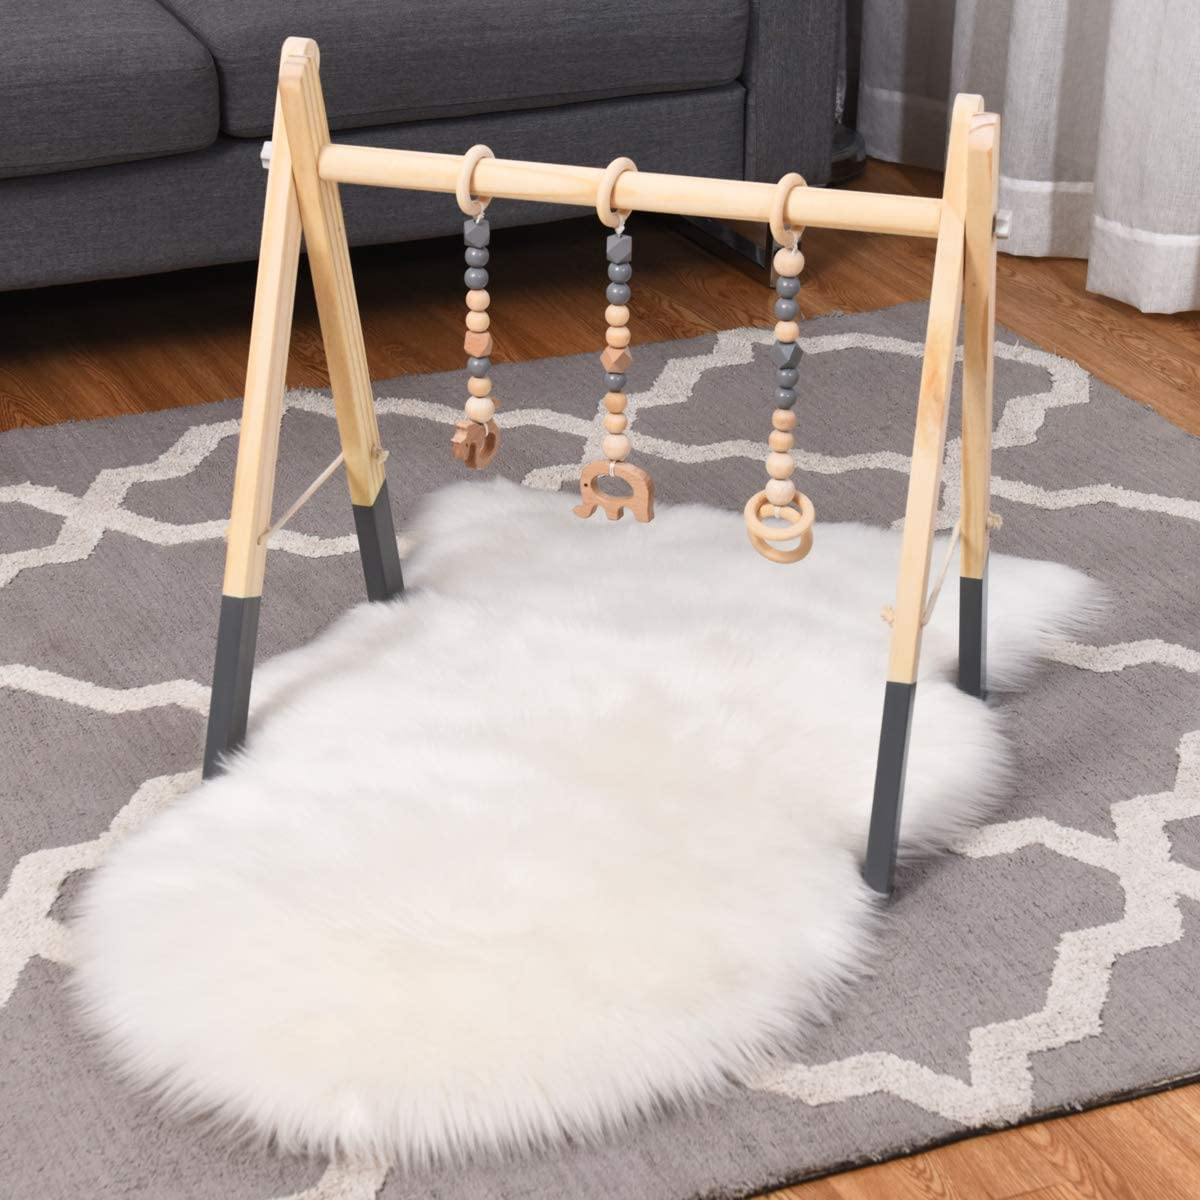 Mobile Baby Exercise Activity Set for Newborn 3 Teething Toys Foldable Infants Gym Frame with Hanging Bar COSTWAY Baby Wooden Play Gym Grey